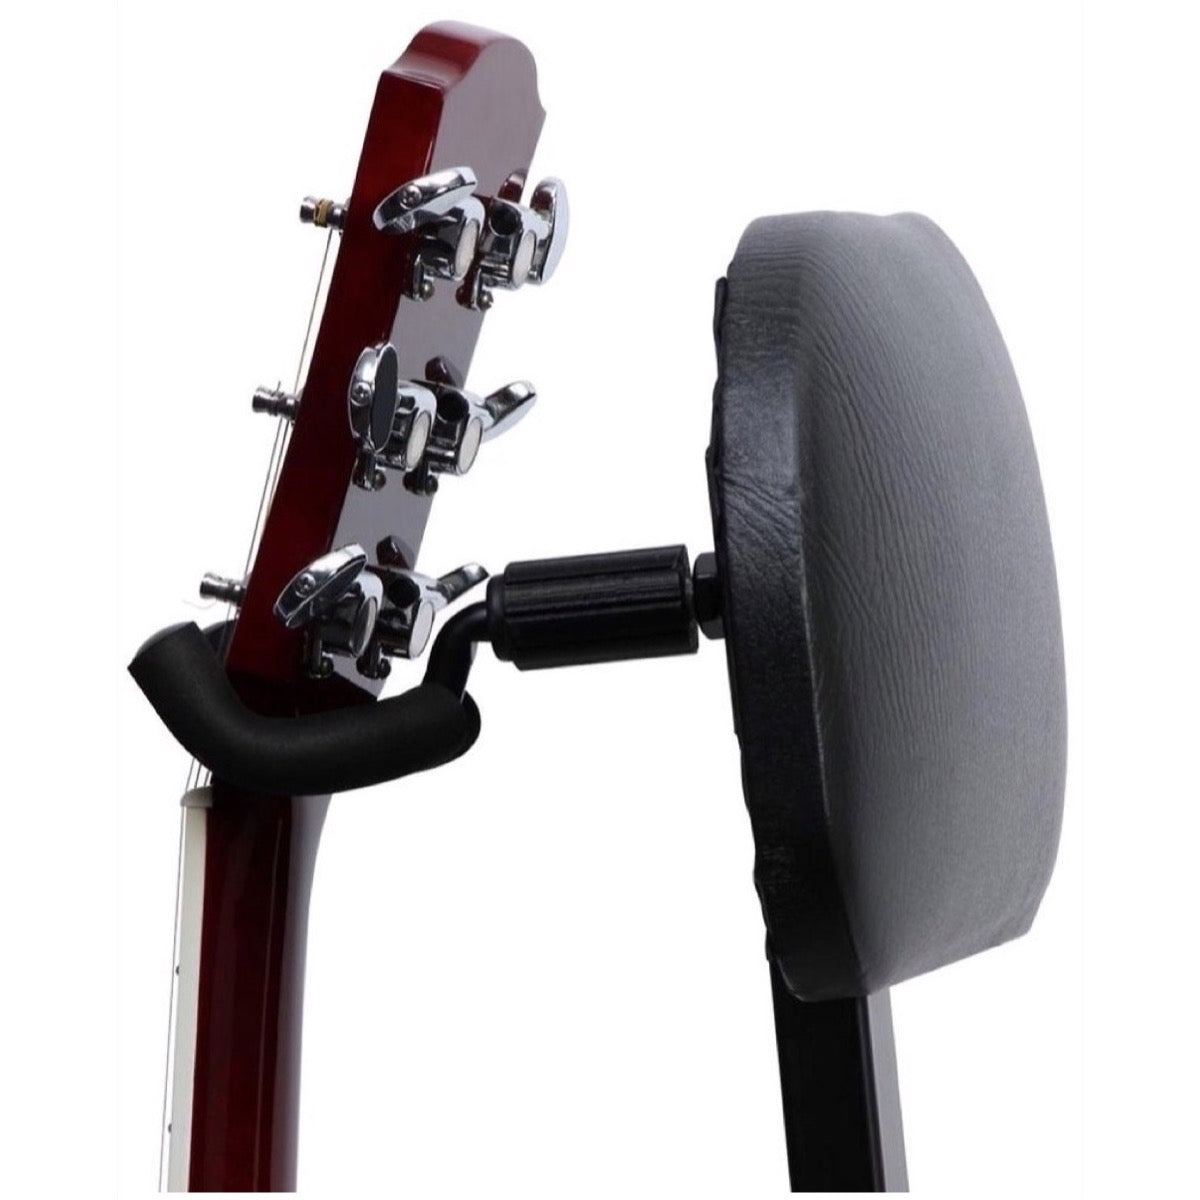 On-Stage GS7710 Guitar Hanger for DT8500 Guitar Throne